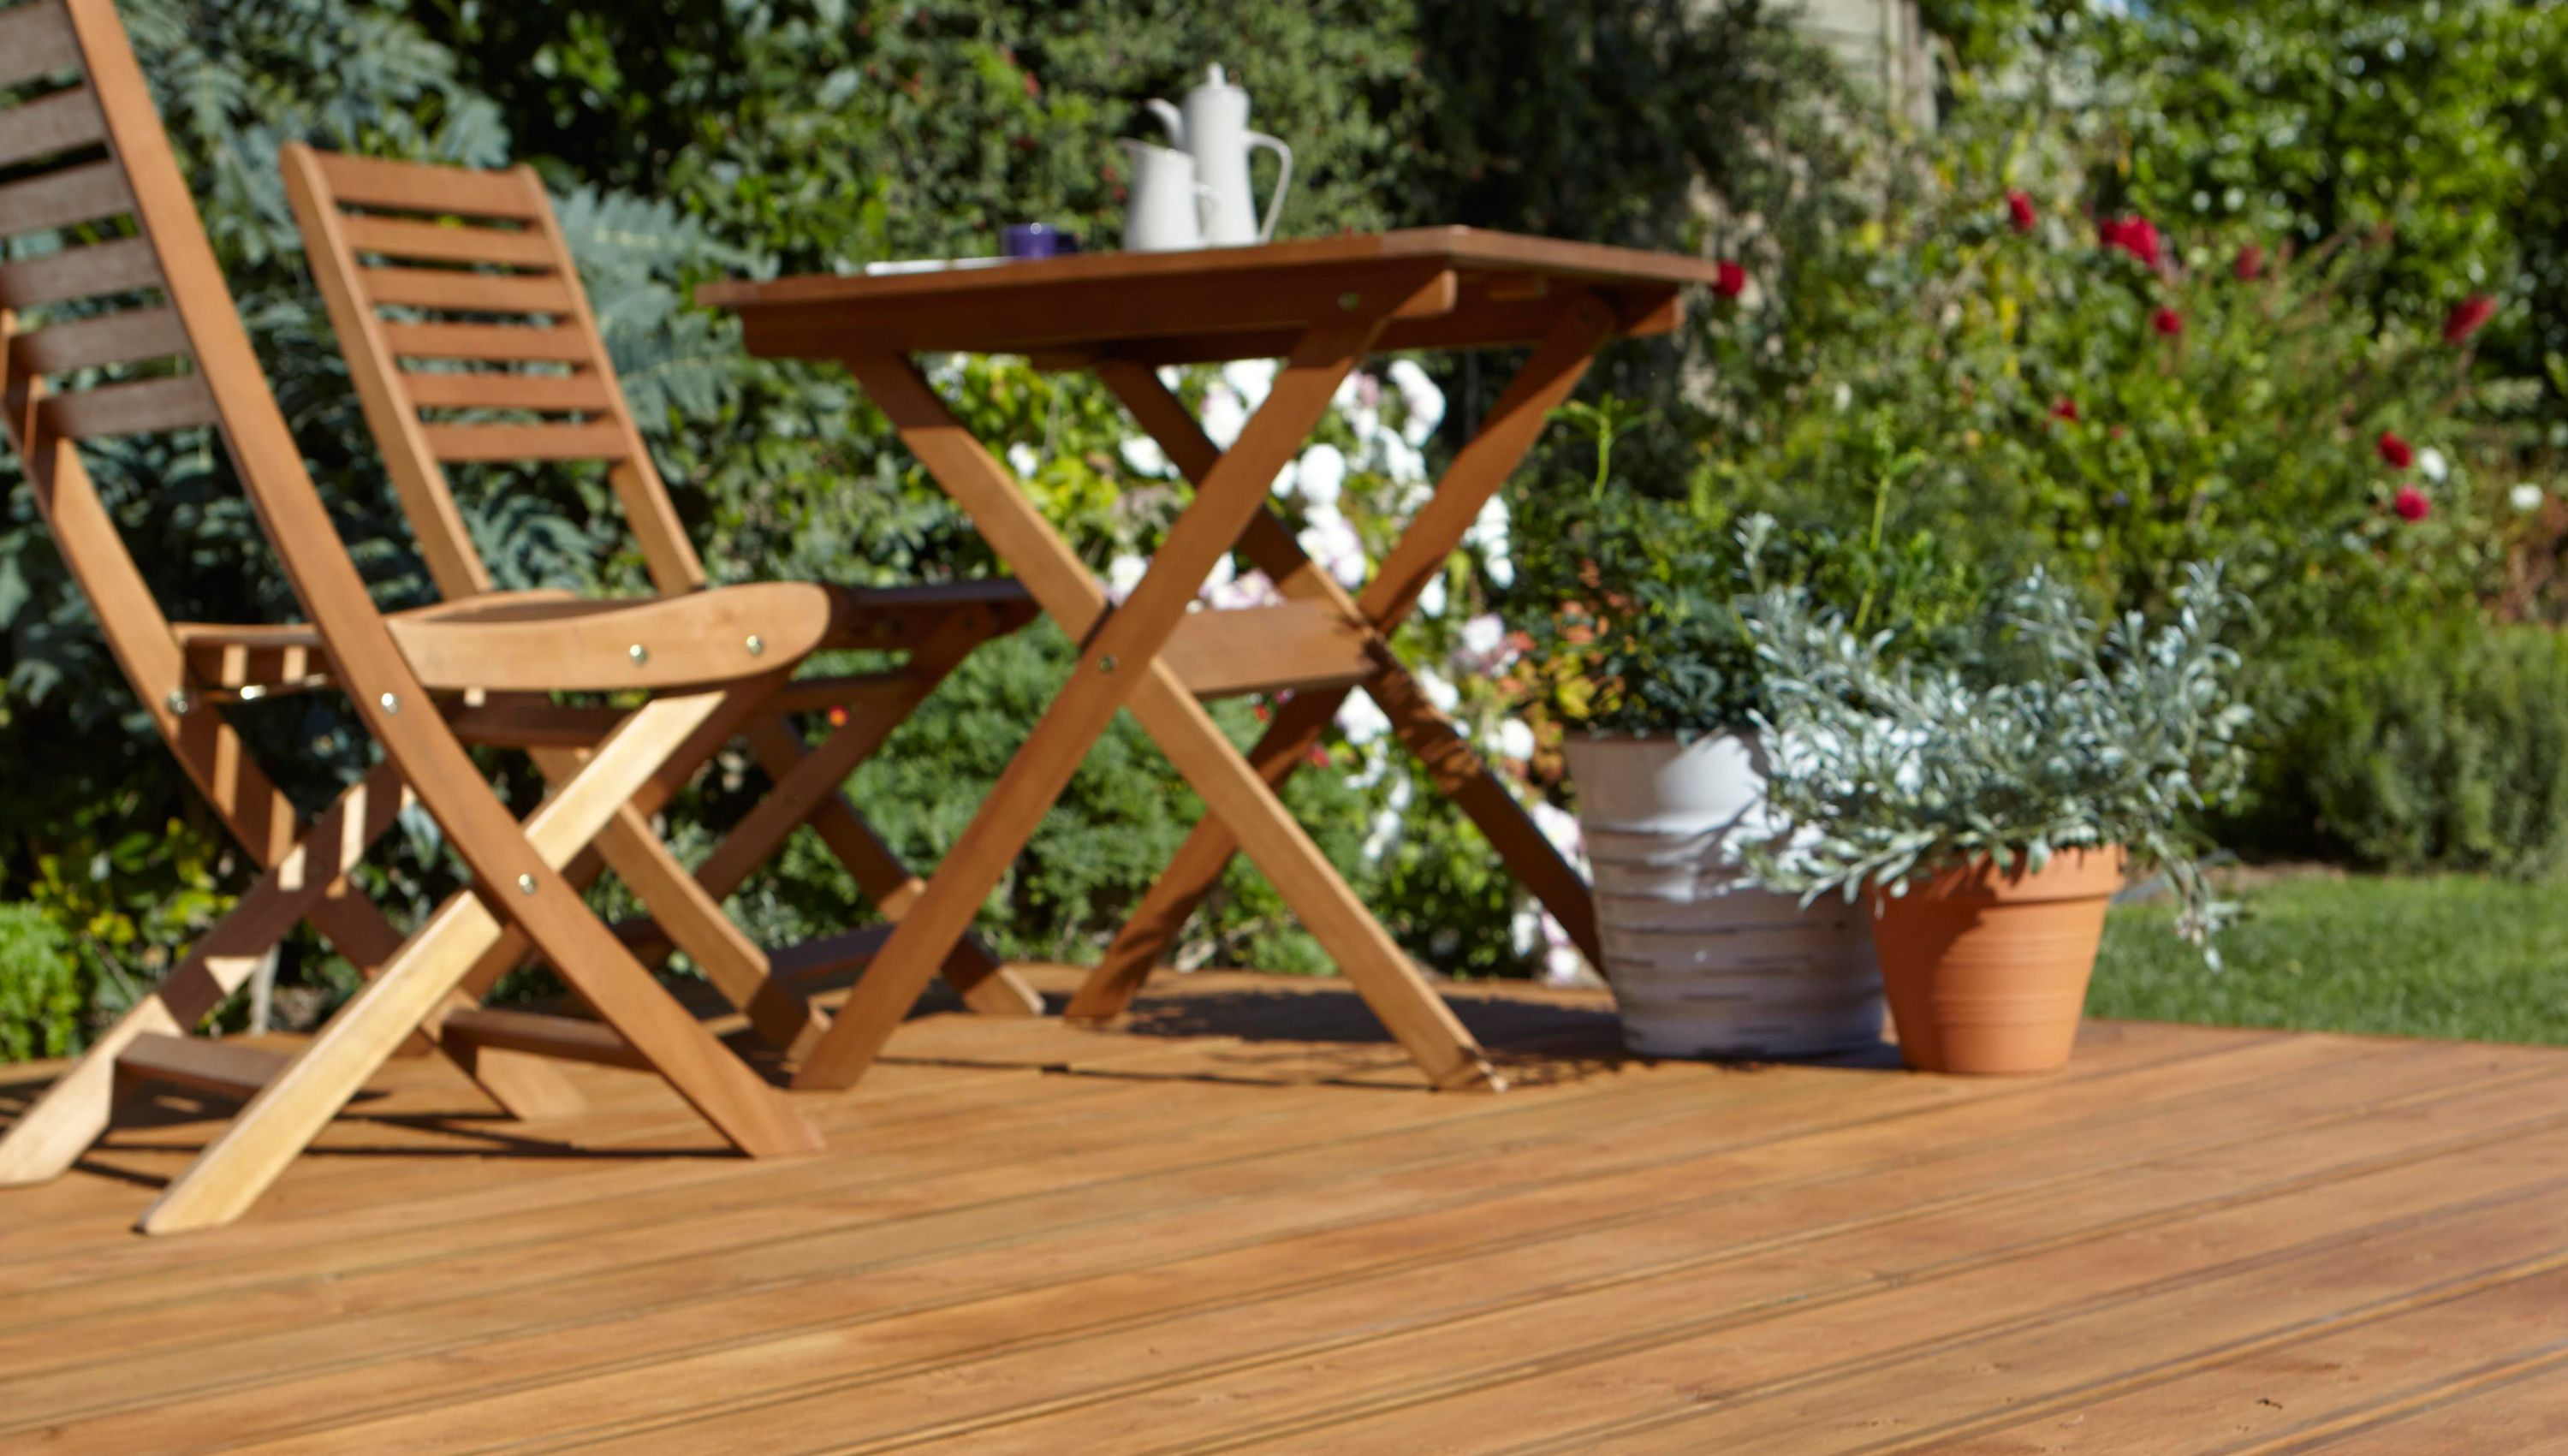 How To Build A Basic Ground Level Deck Help Ideas Diy At B Q